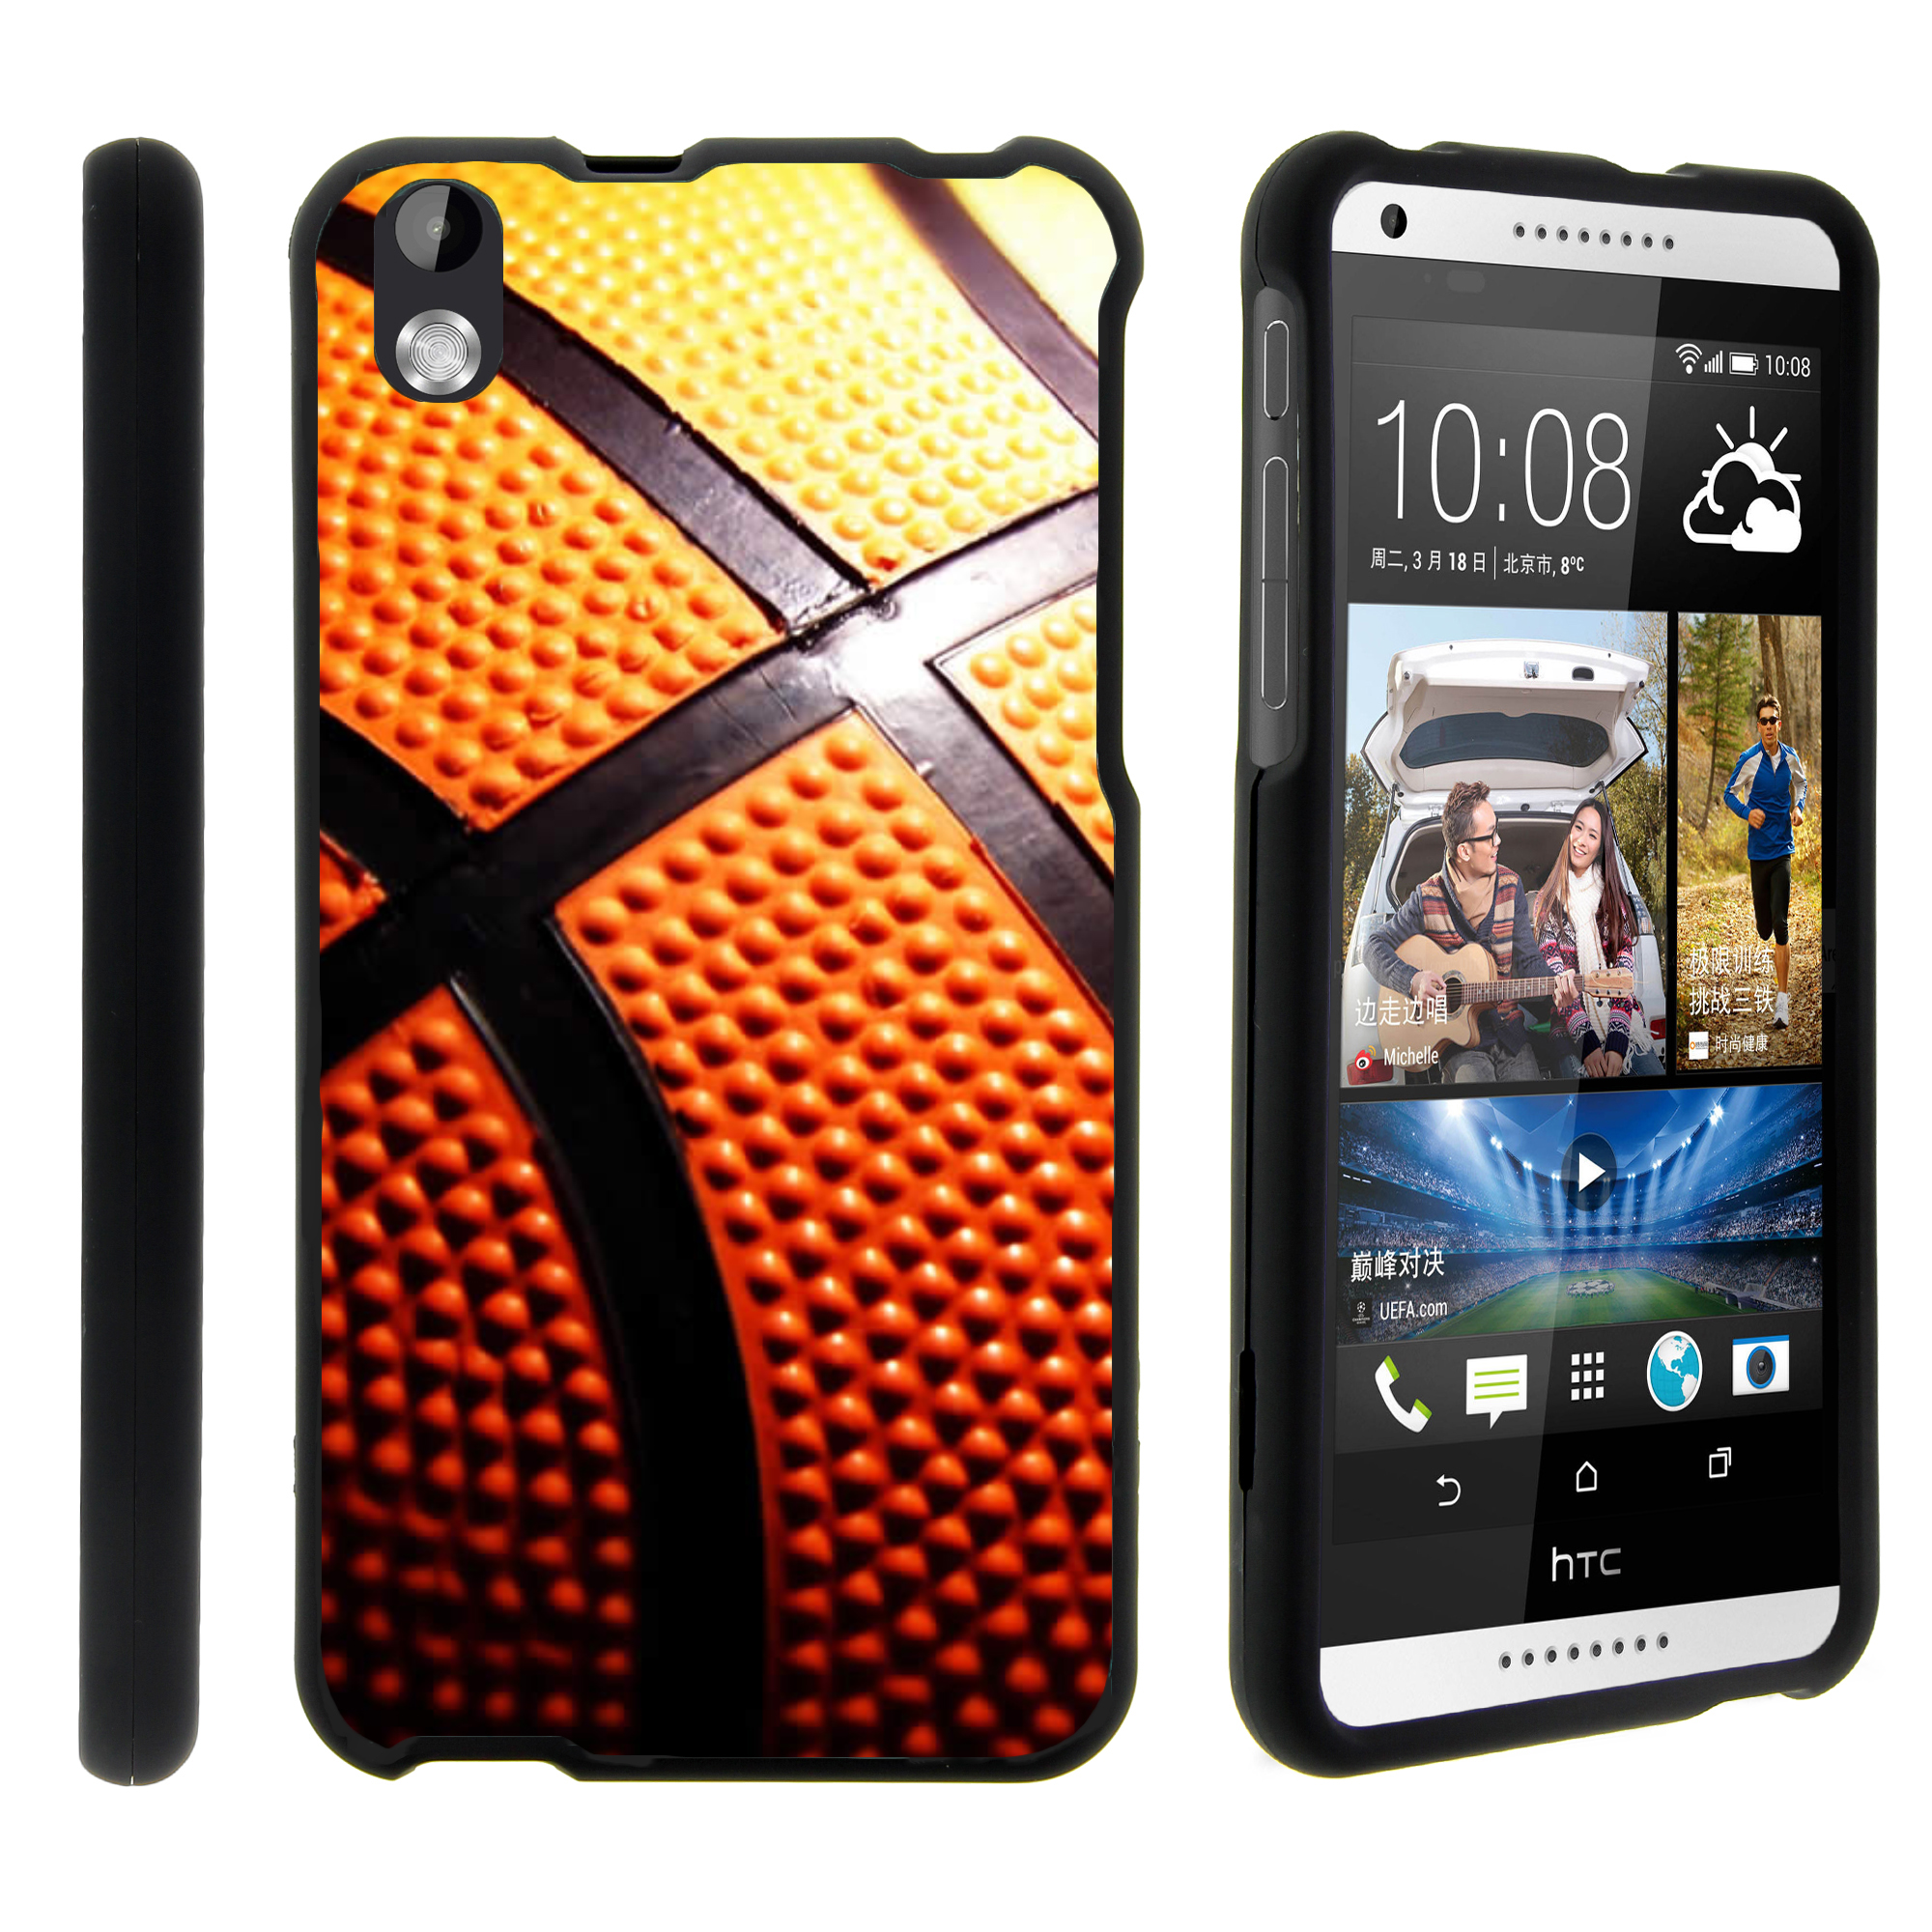 HTC Desire 816, [SNAP SHELL][Matte Black] 2 Piece Snap On Rubberized Hard Plastic Cell Phone Case with Exclusive Art - Close Up Basketball